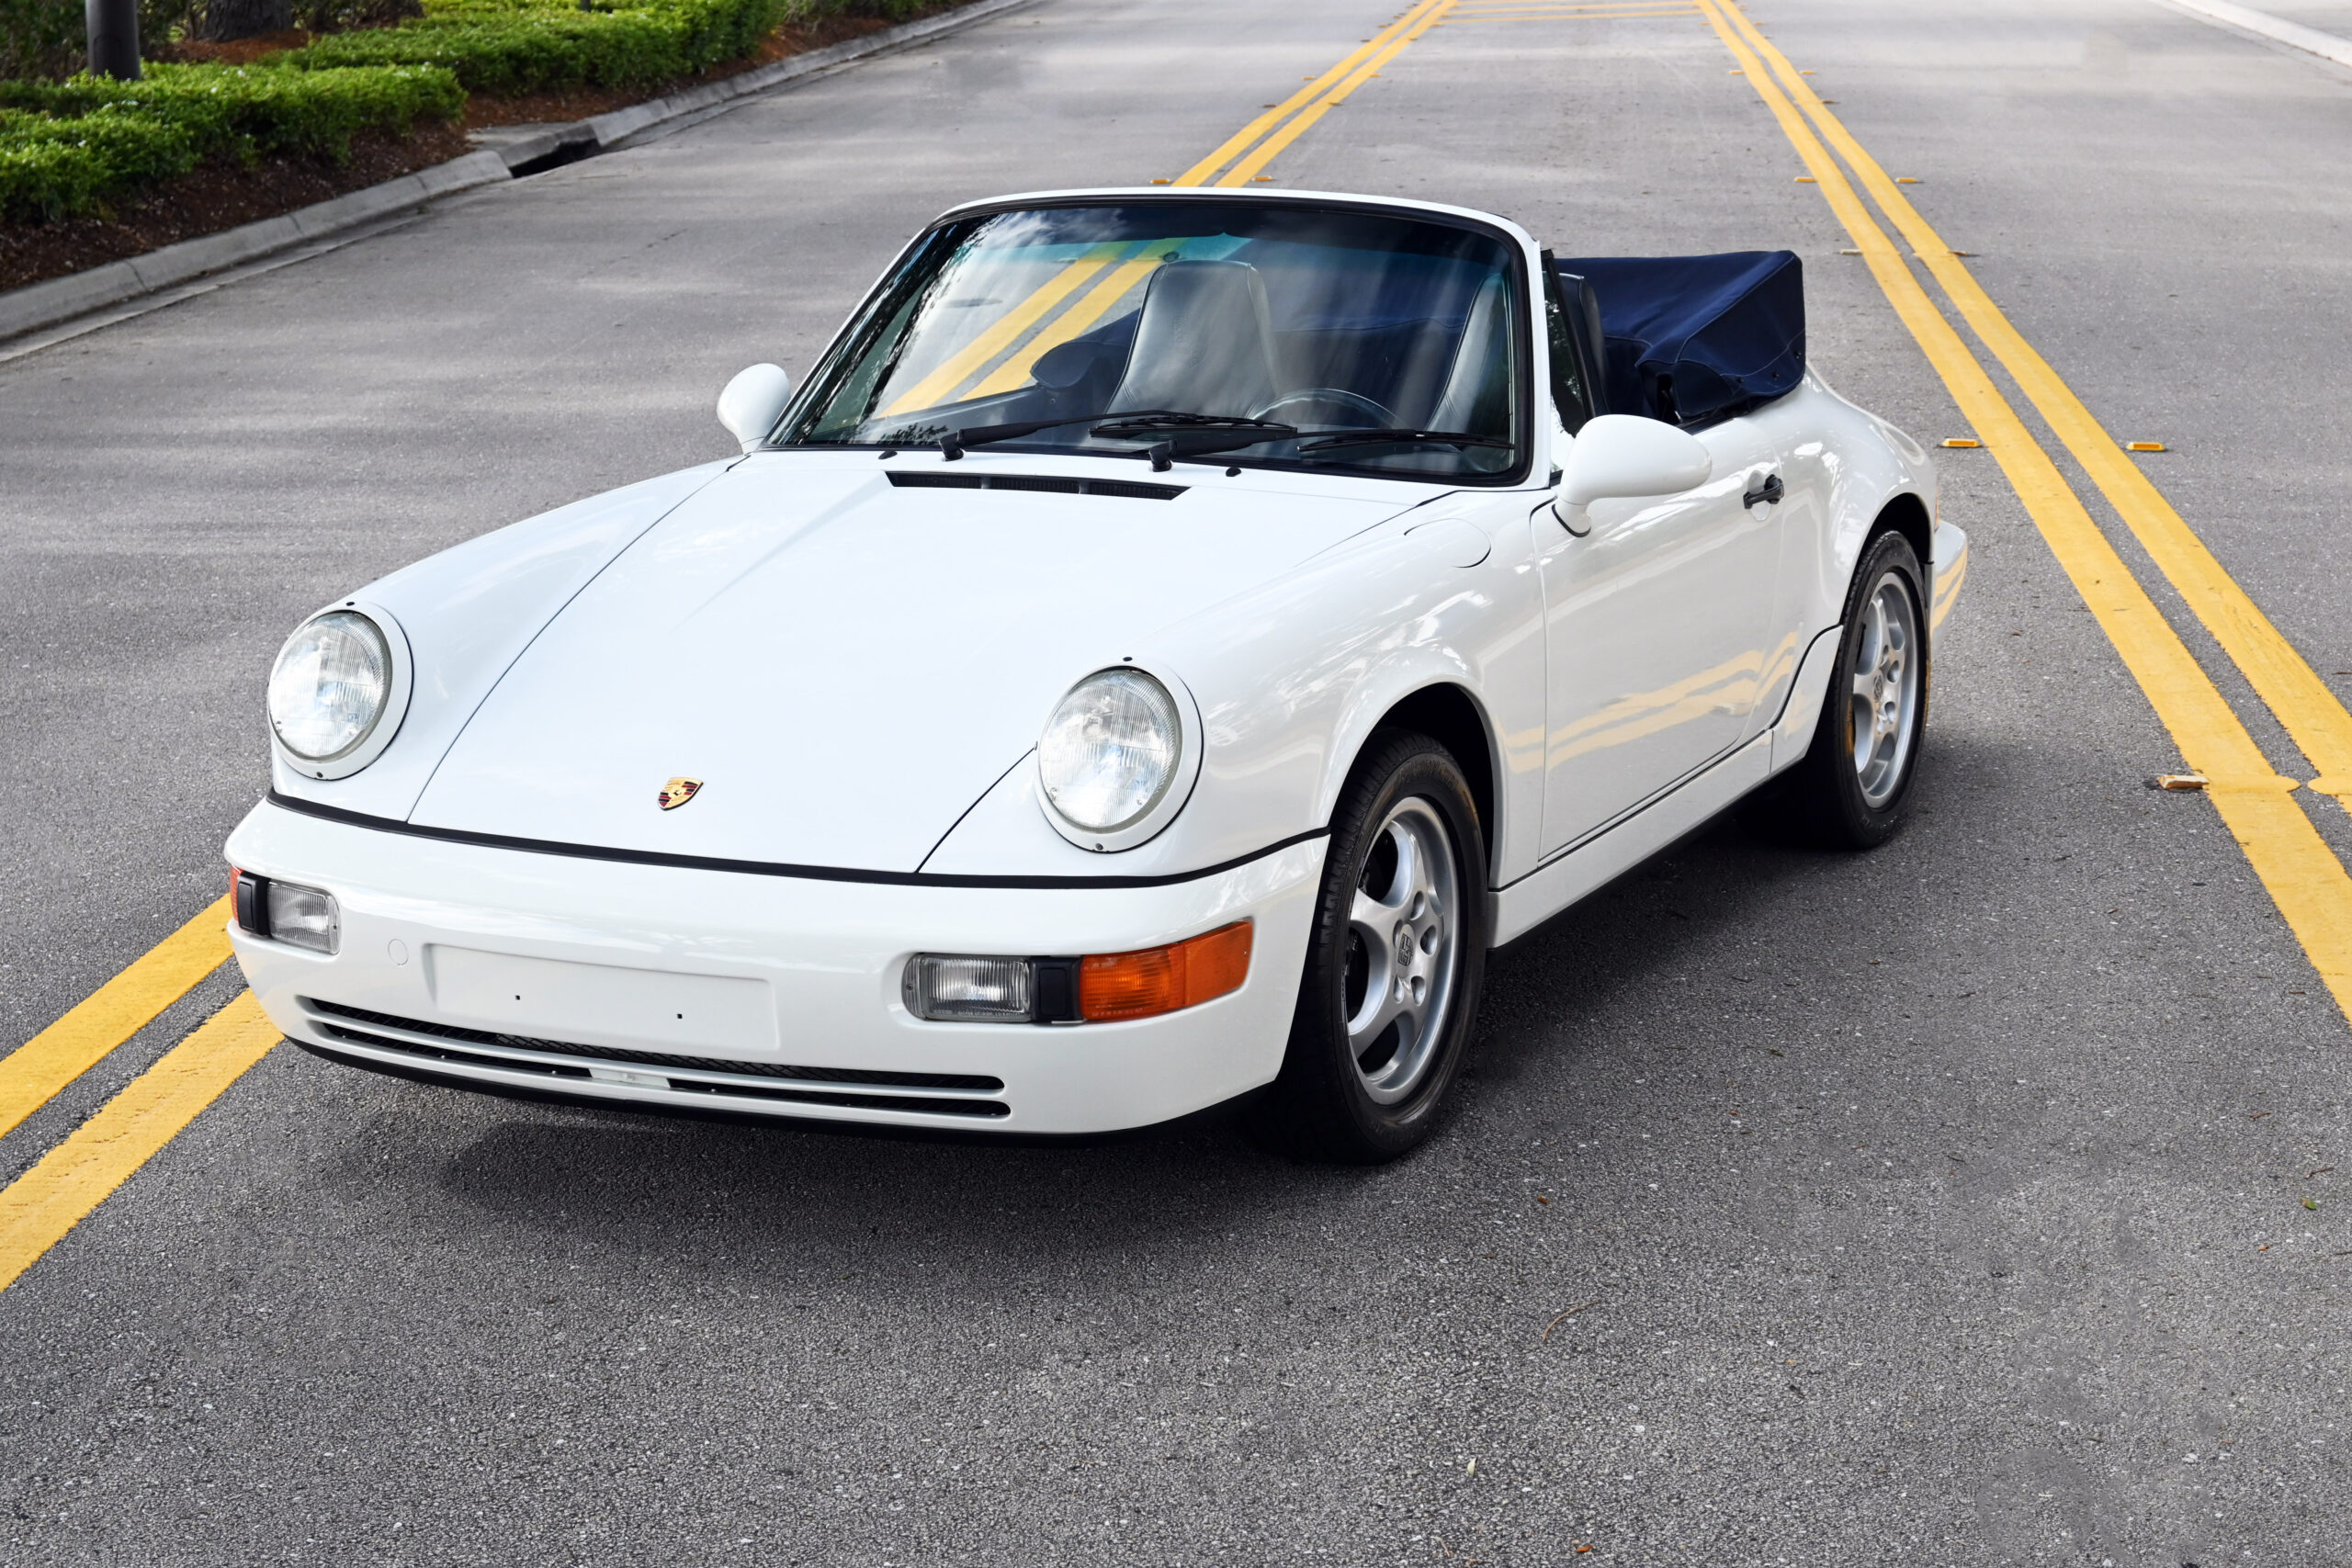 1993 964 Carrera 2.  Last year C2 One of 600, mostly original paint, documented service history